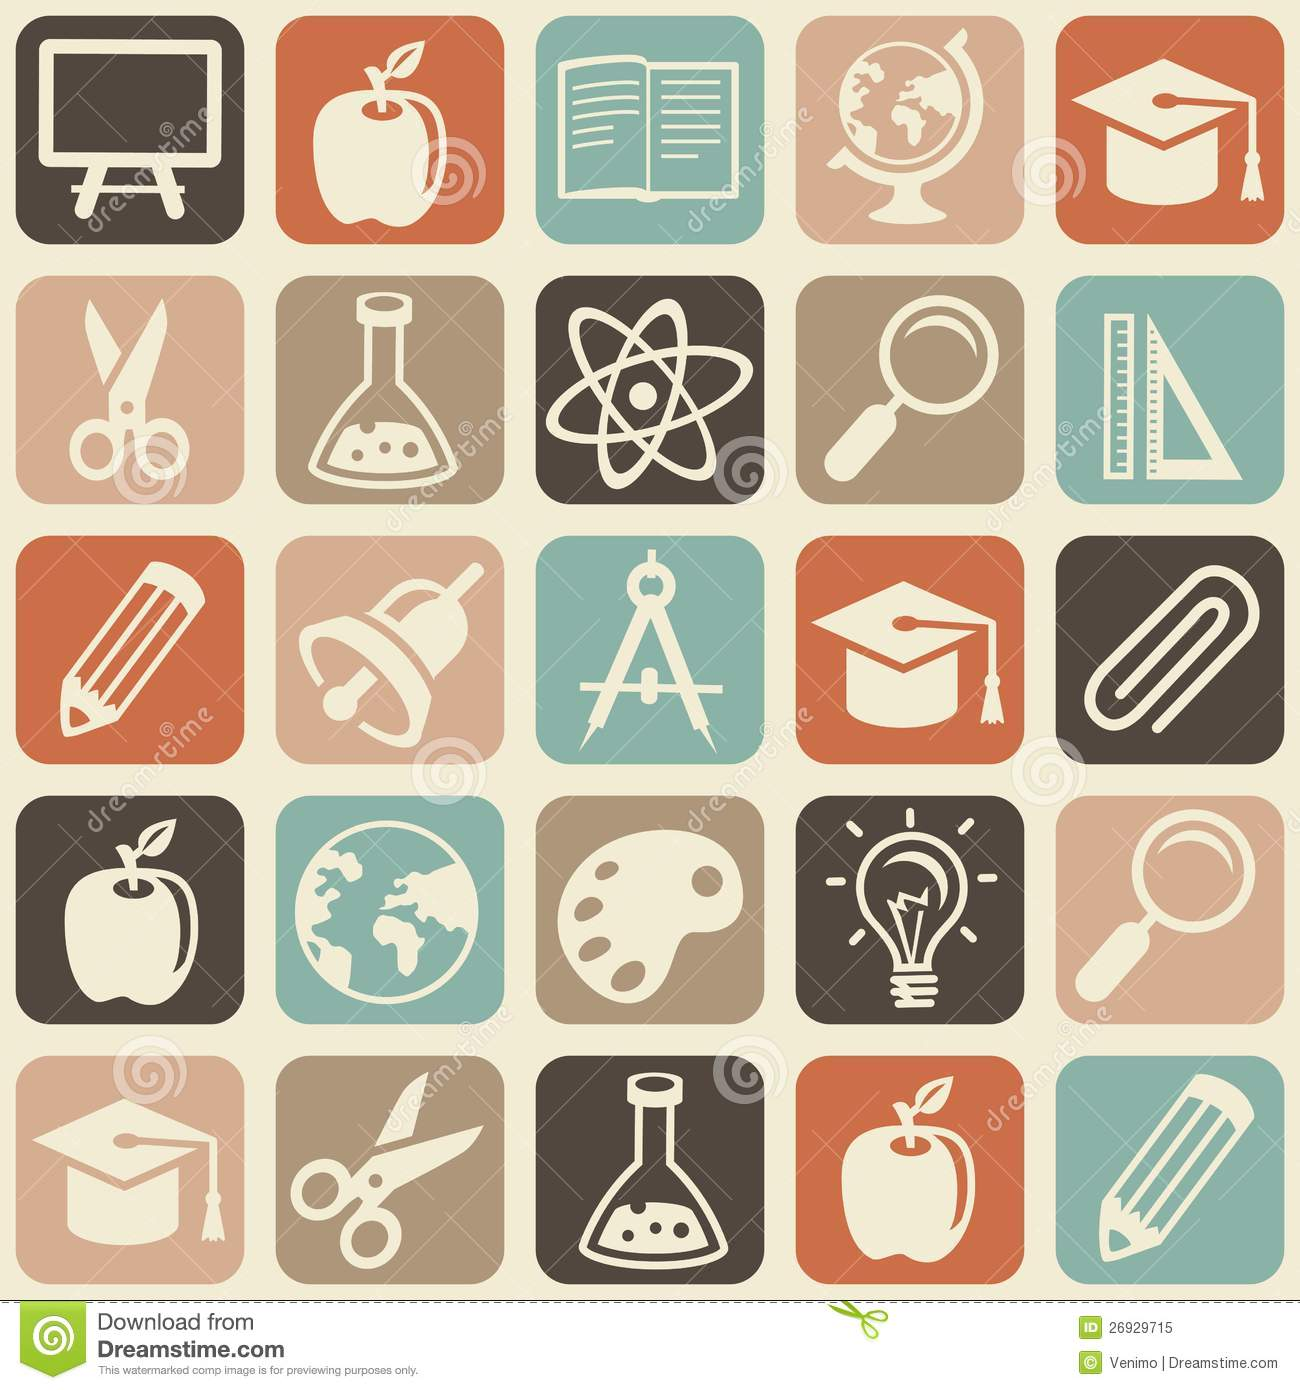 11 Education Vector Pattern Images - Seamless Patterns ...